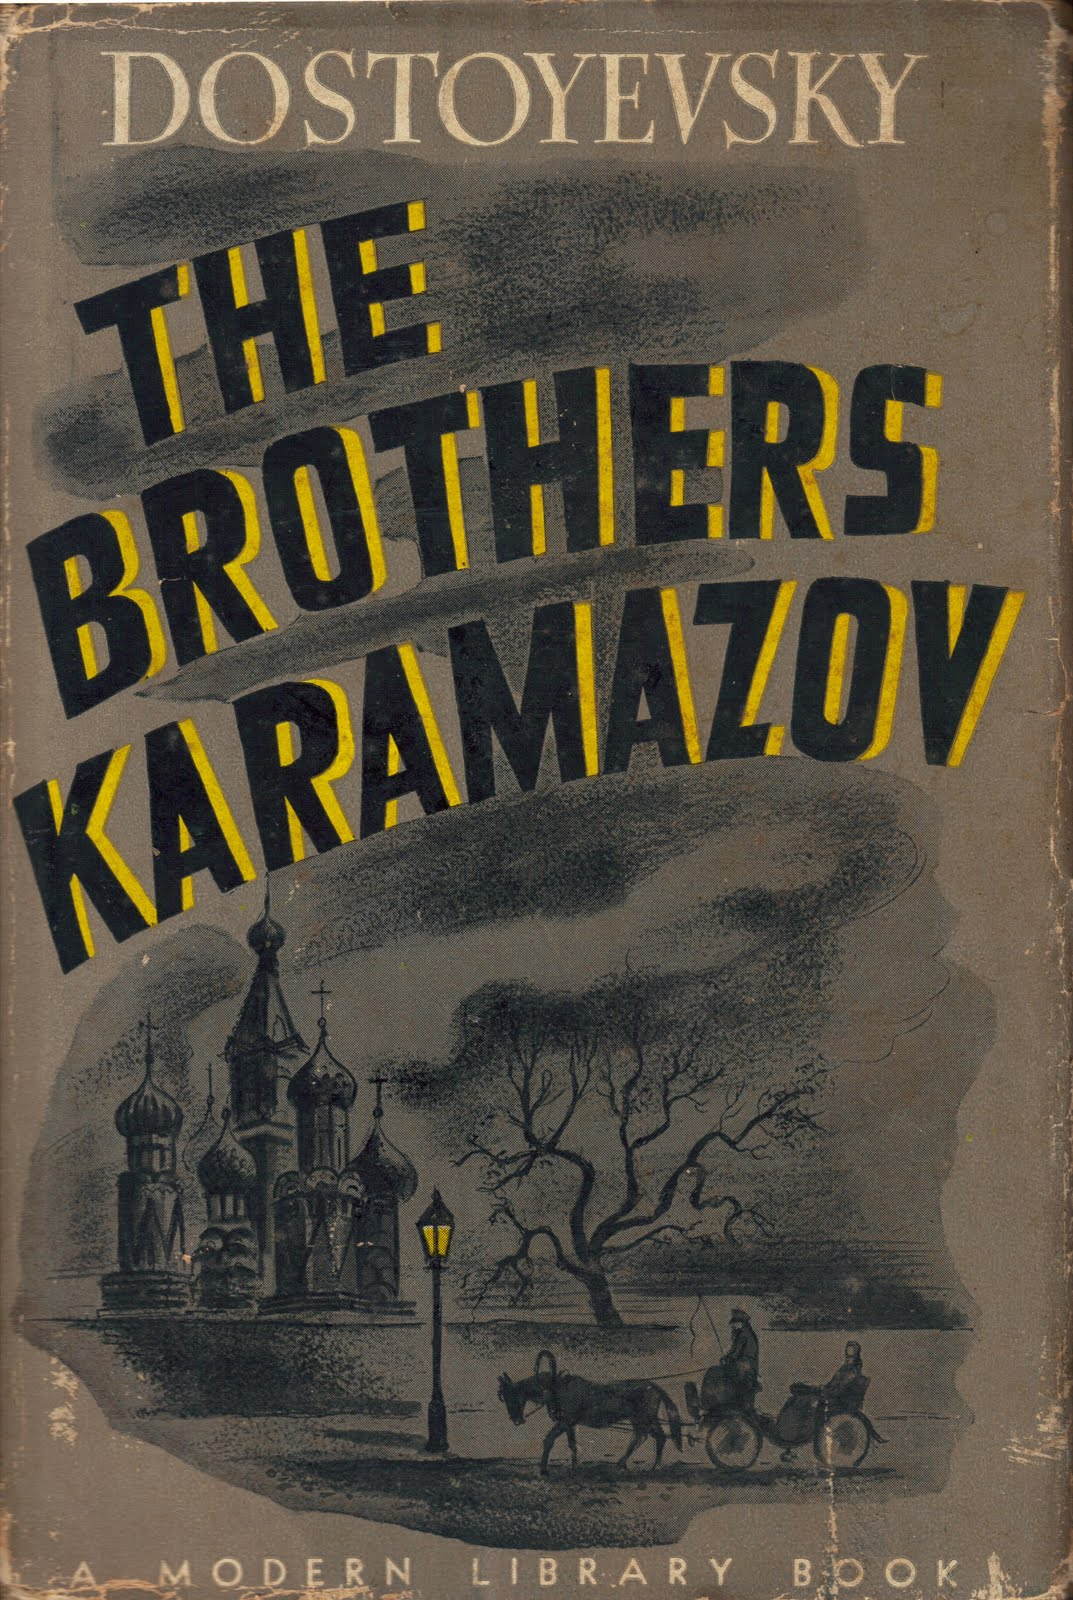 a discussion of whether ivan fyodorovich karamazov was a diabolical hero A famous-named foreigner is a character hailing (in russian he was called ivan fyodorovich it's uncertain whether the author realized that this was the.